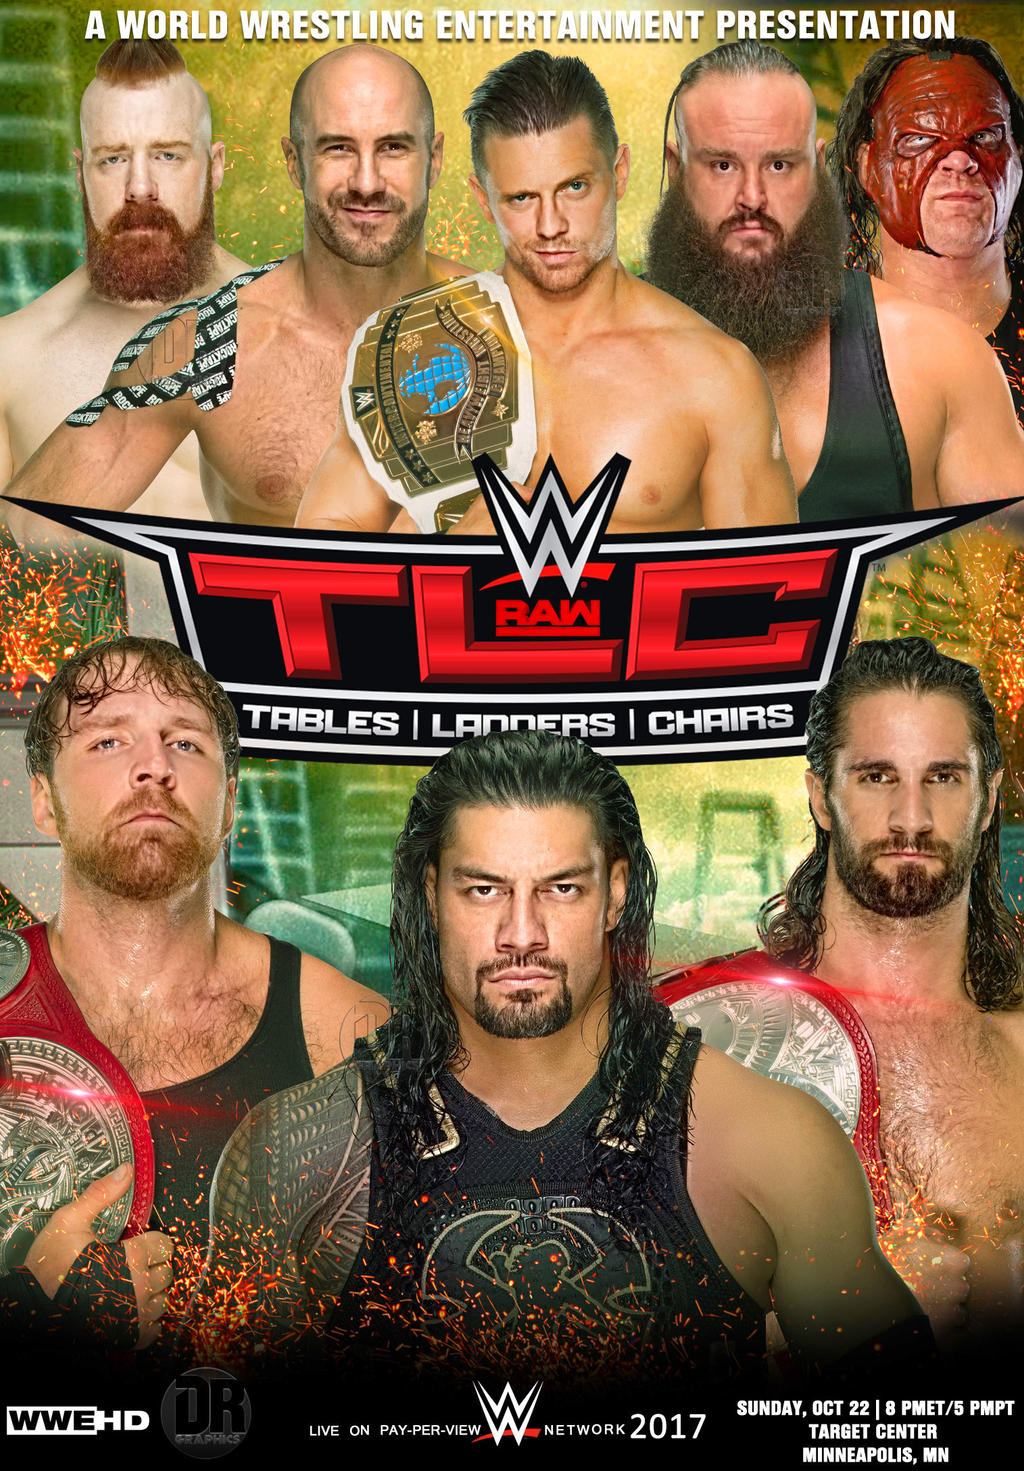 Wwe tables ladders and chairs 2013 poster - Darkvoidpictures 3 0 Wwe Tlc 2017 Poster By Dinesh Musiclover